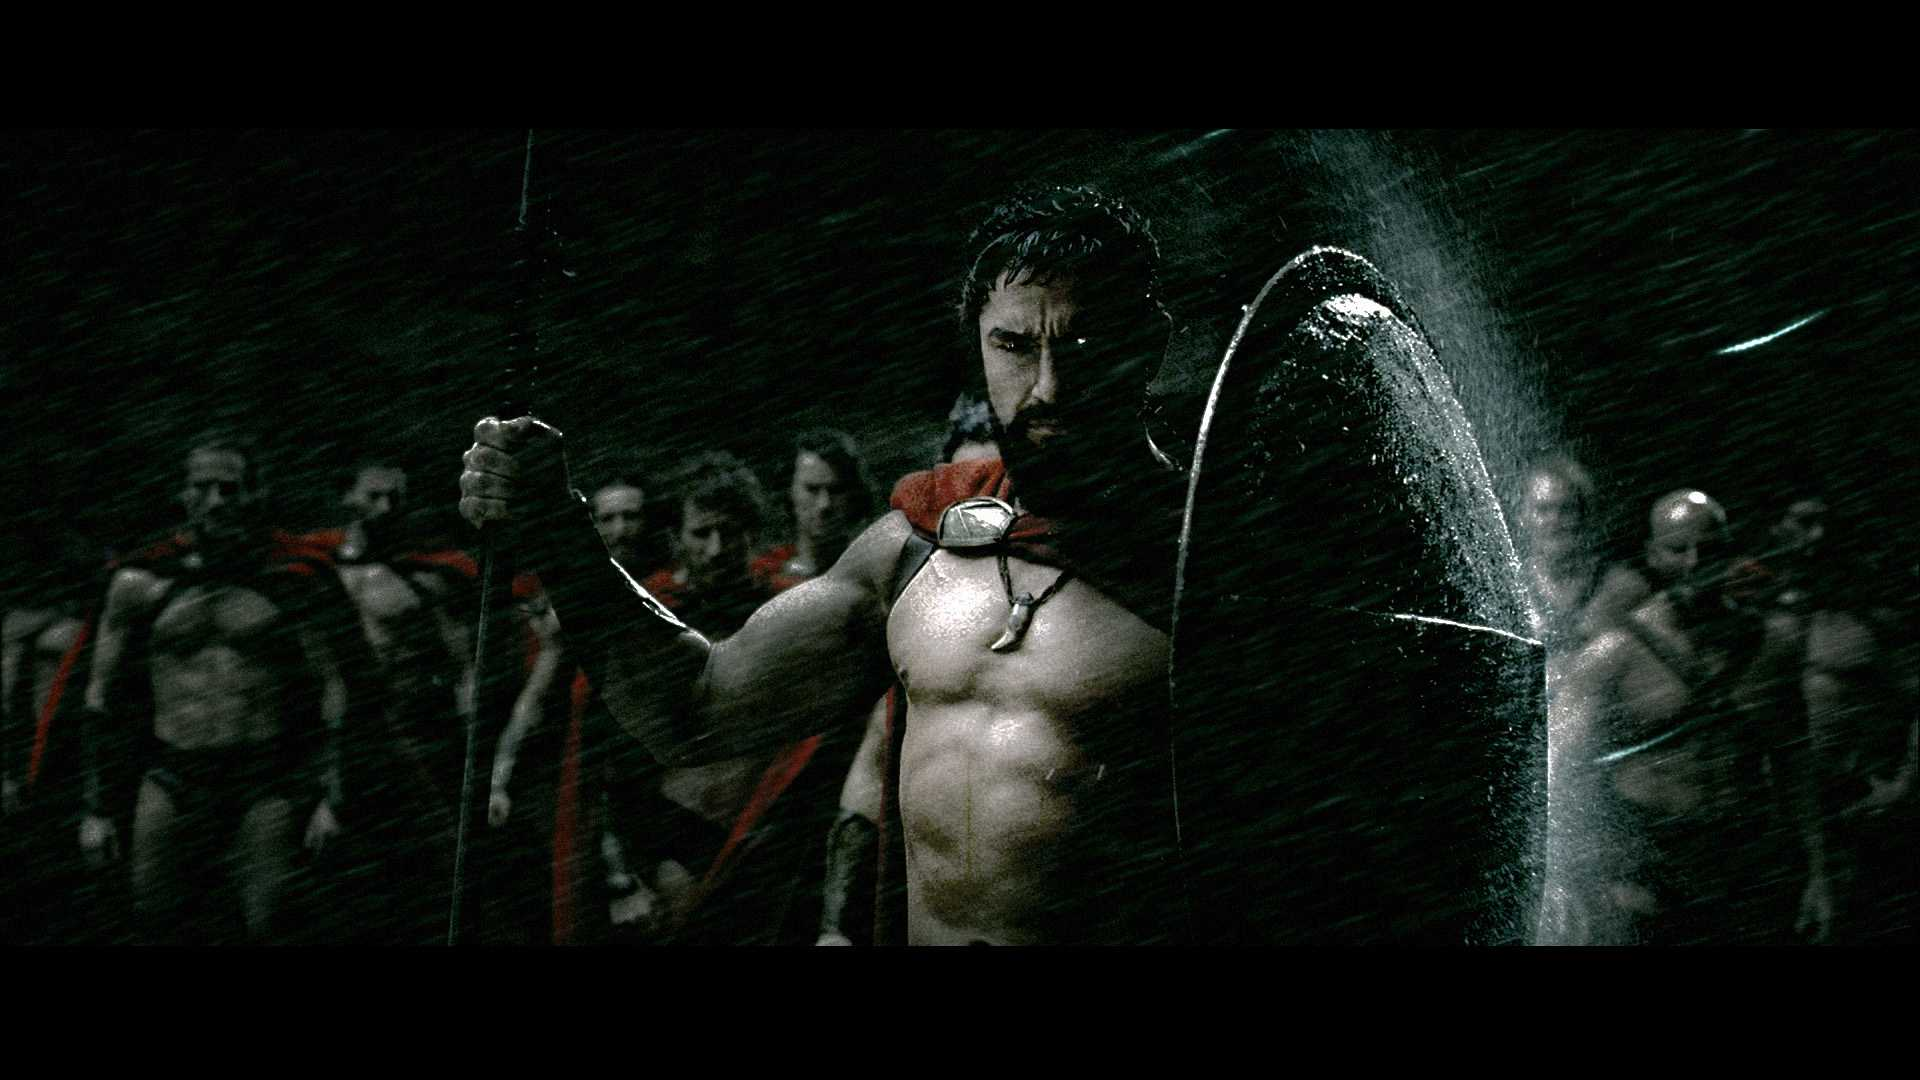 300 movie wallpapers in high quality - Frank Miller comic - Sparta